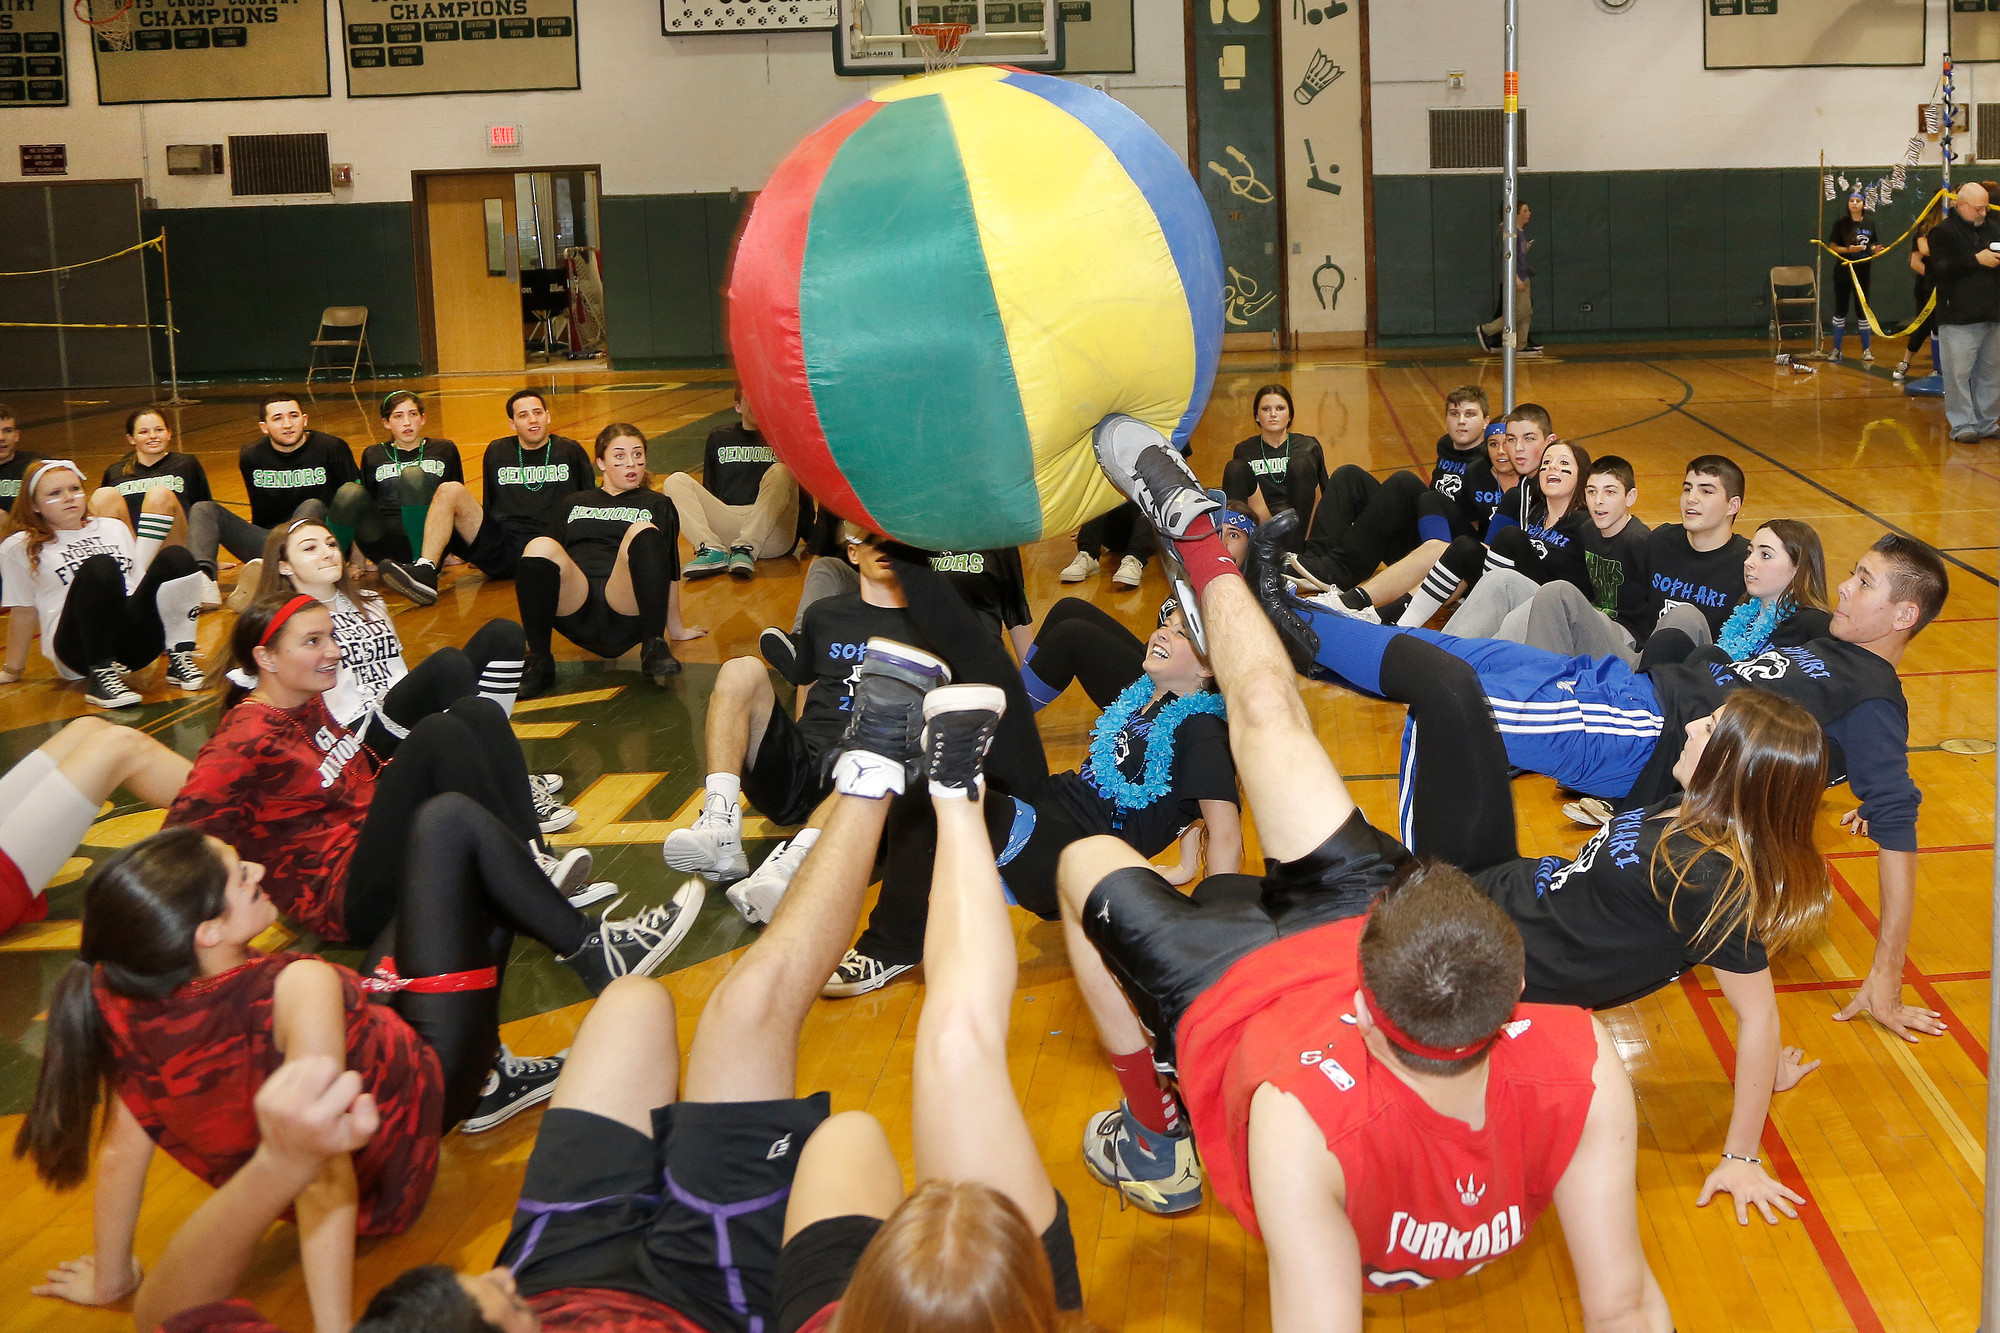 Juniors blocked a goal during the crab soccer game.